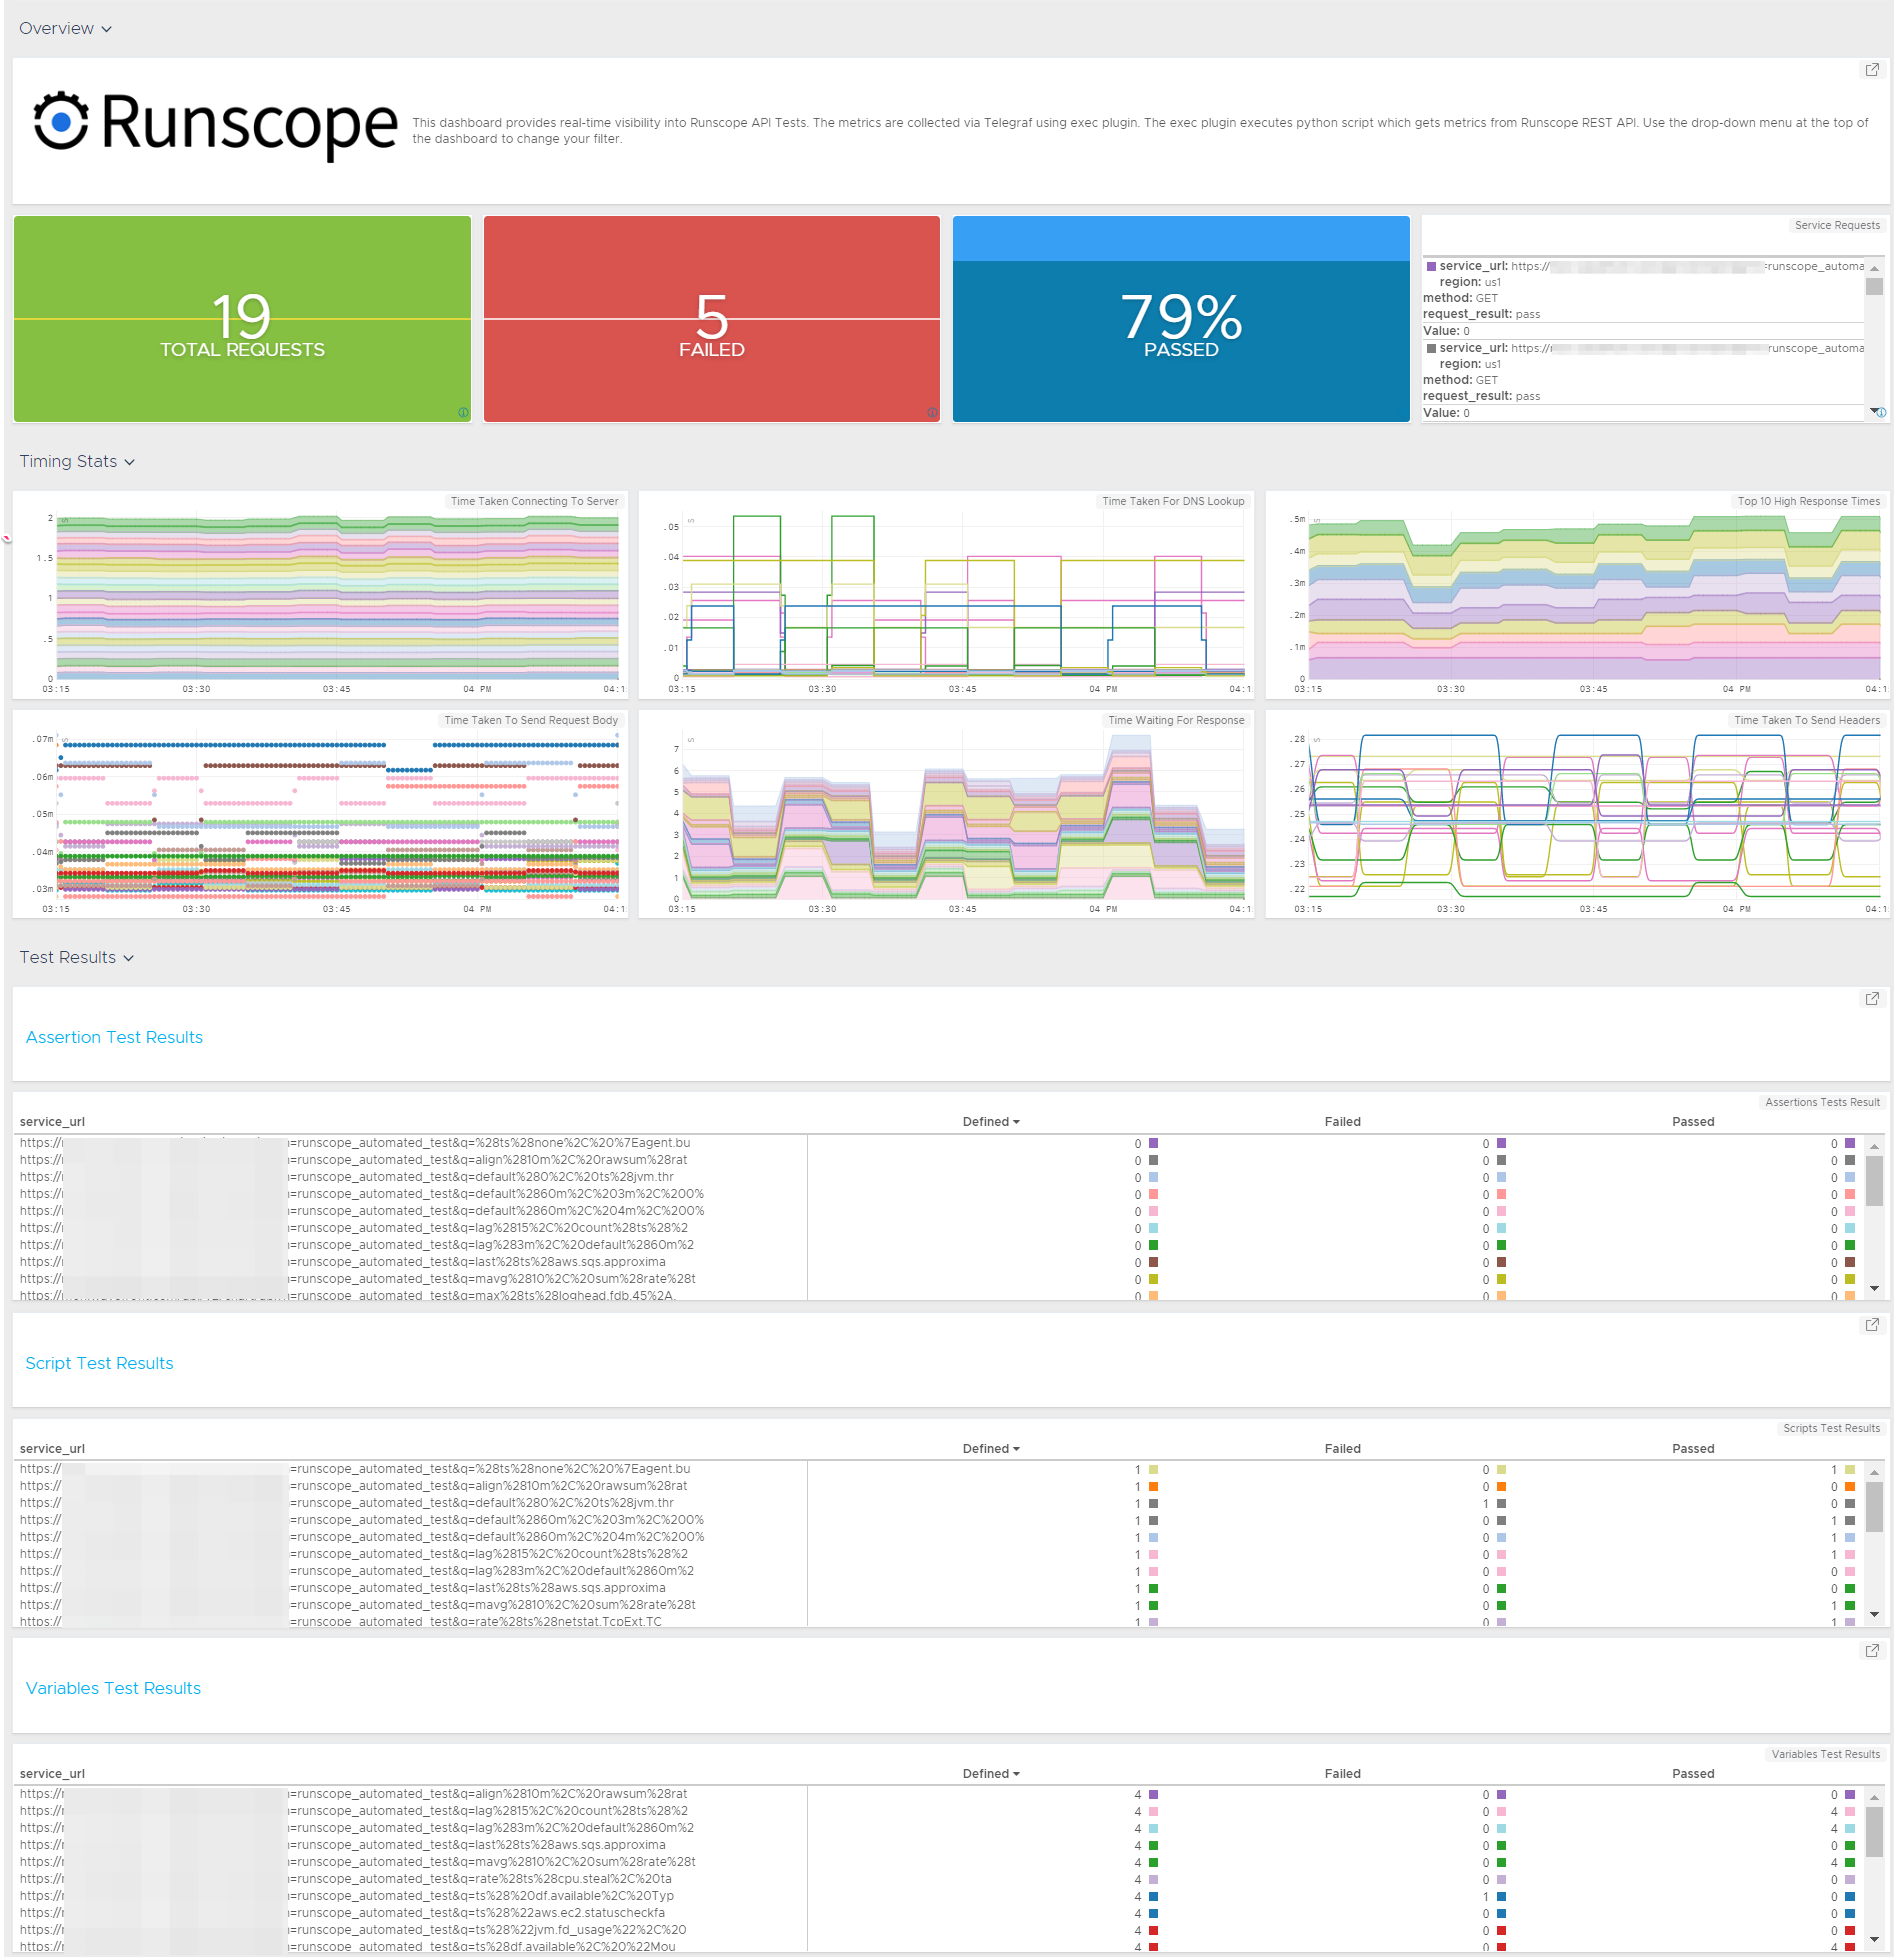 images/runscope-dashboard.png